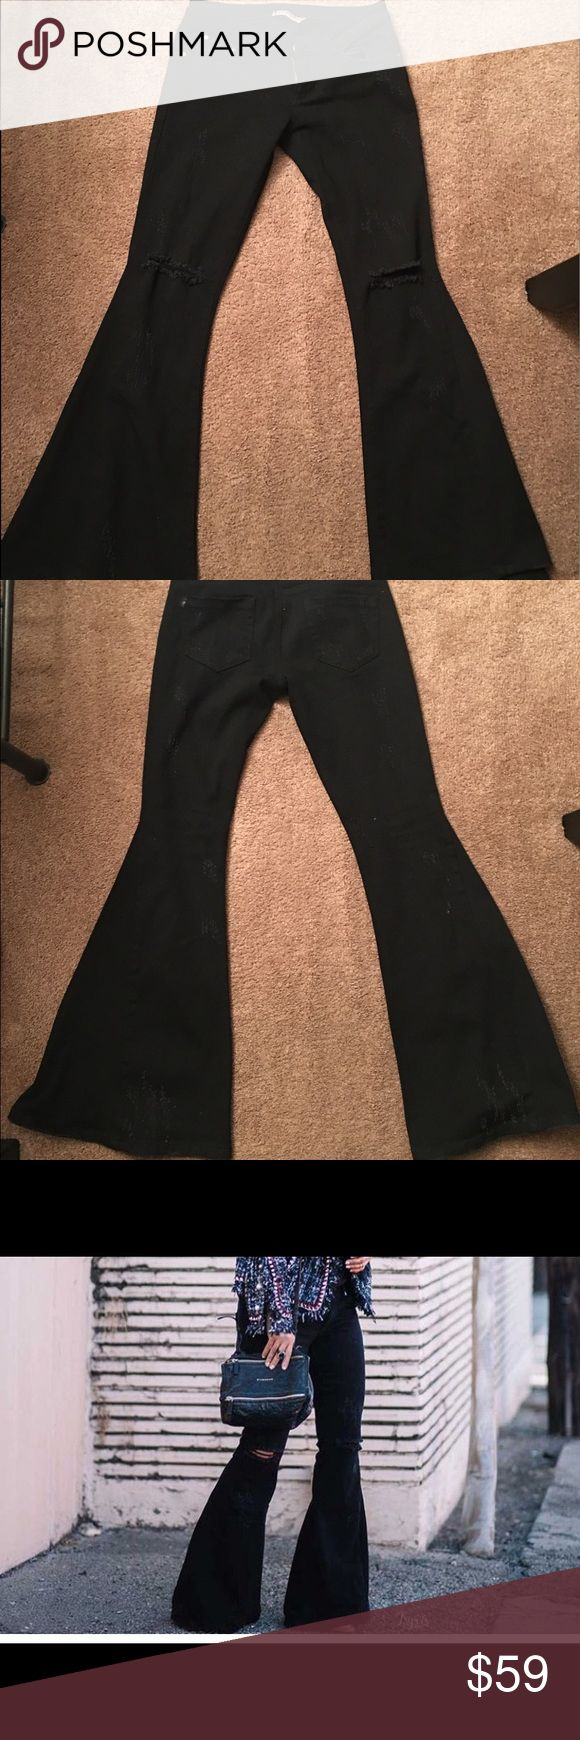 Black Flare Jeans (never worn) Size 6. Not long enough for me and can't return. Bought these from an online boutique. Came with no tags but never worn outside of trying them on. Pictures shows how the look on. Very few were sold, so this is a great unique buy!!! Jeans Flare & Wide Leg